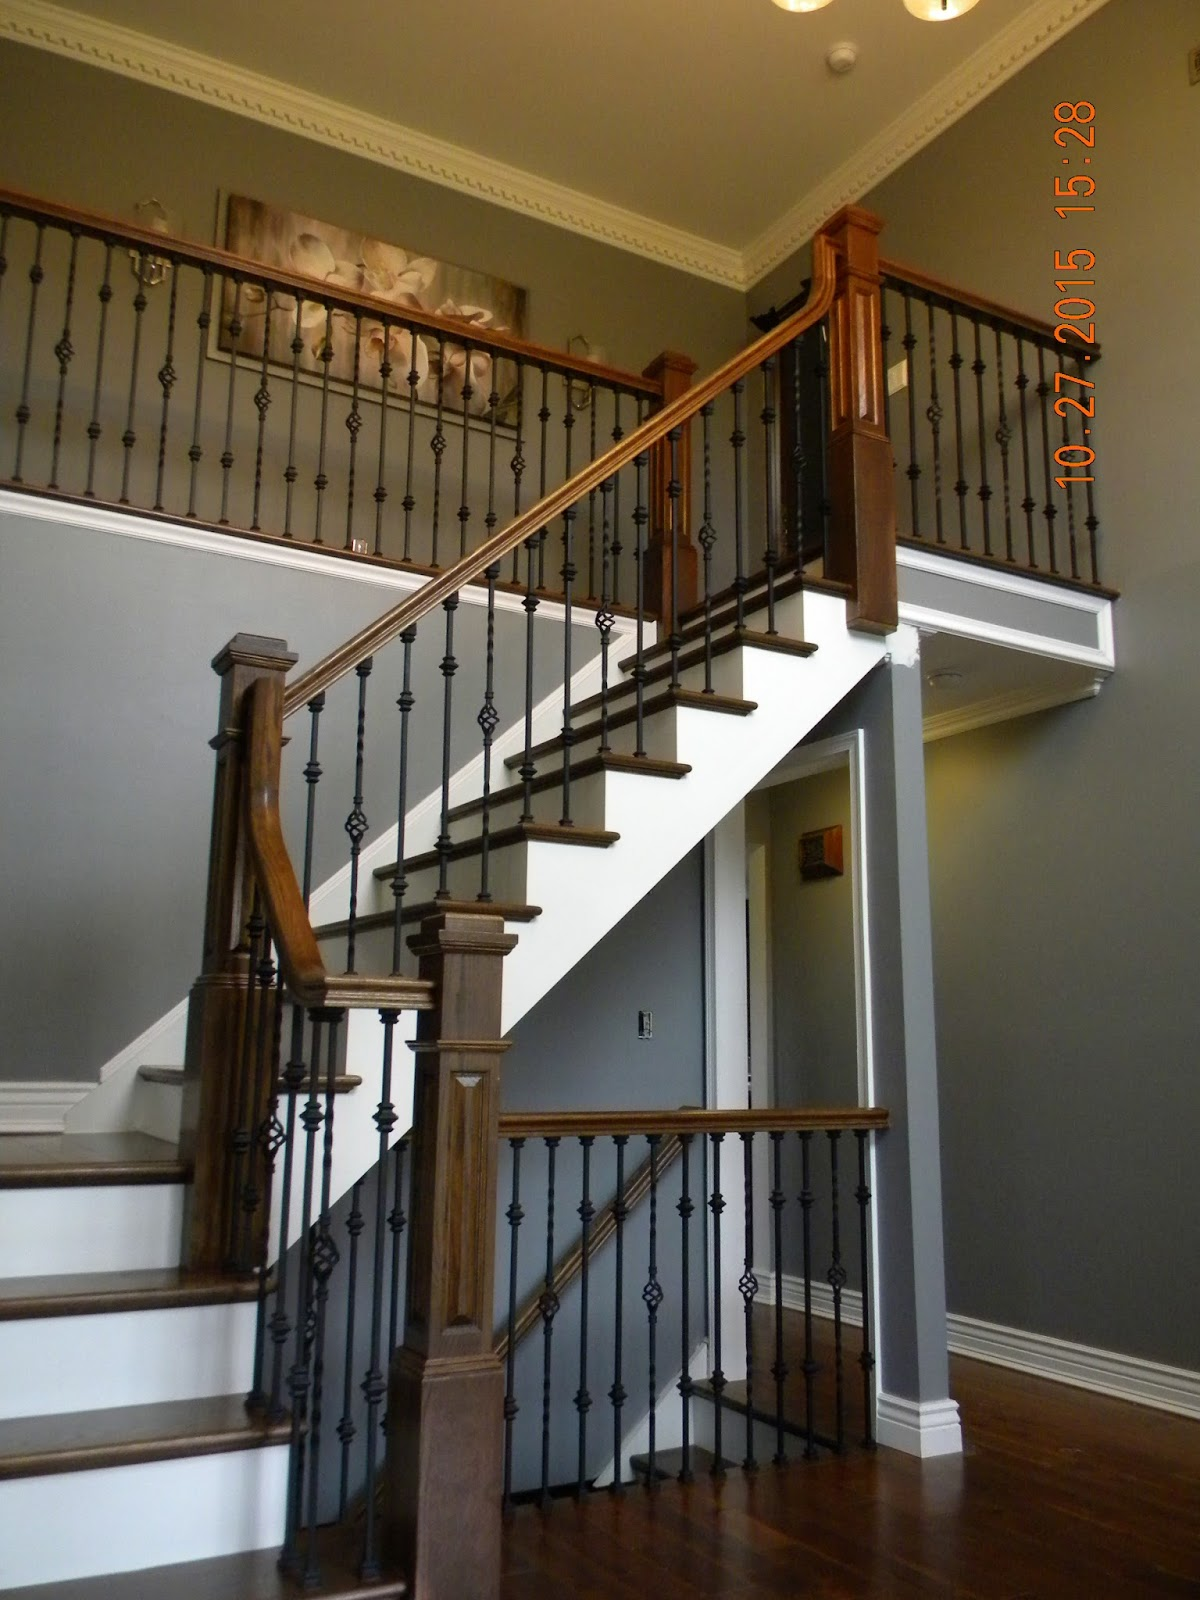 Charmant Hardwood Stair Replacement With Box Newels And Iron Balusters Medford NJ